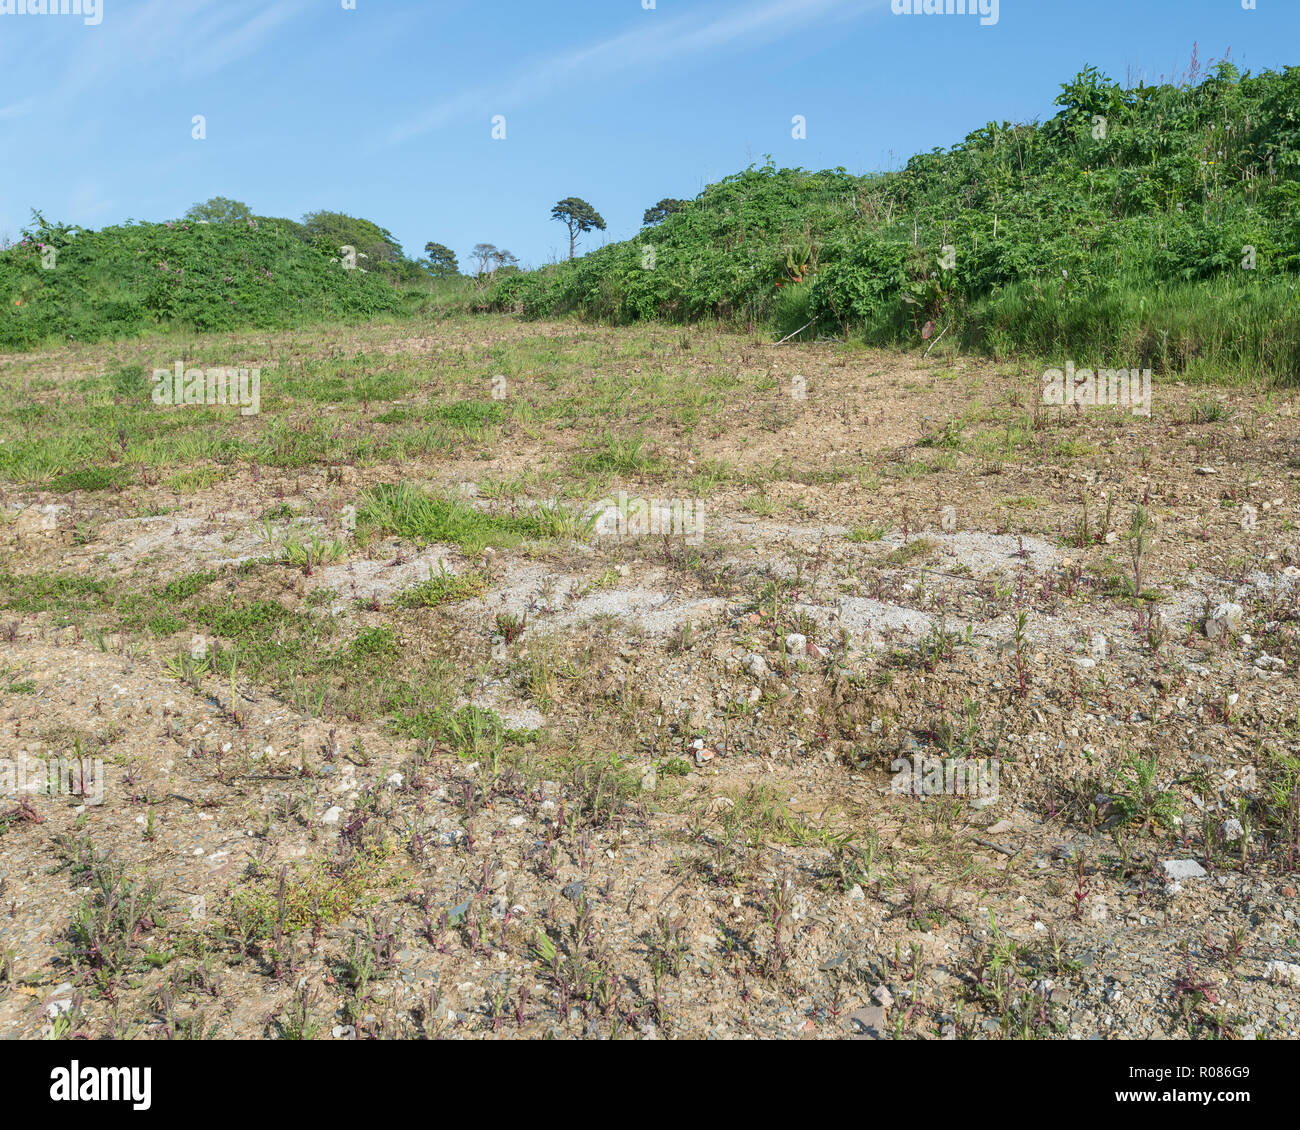 Parched earth in field during heatwave. - Stock Image